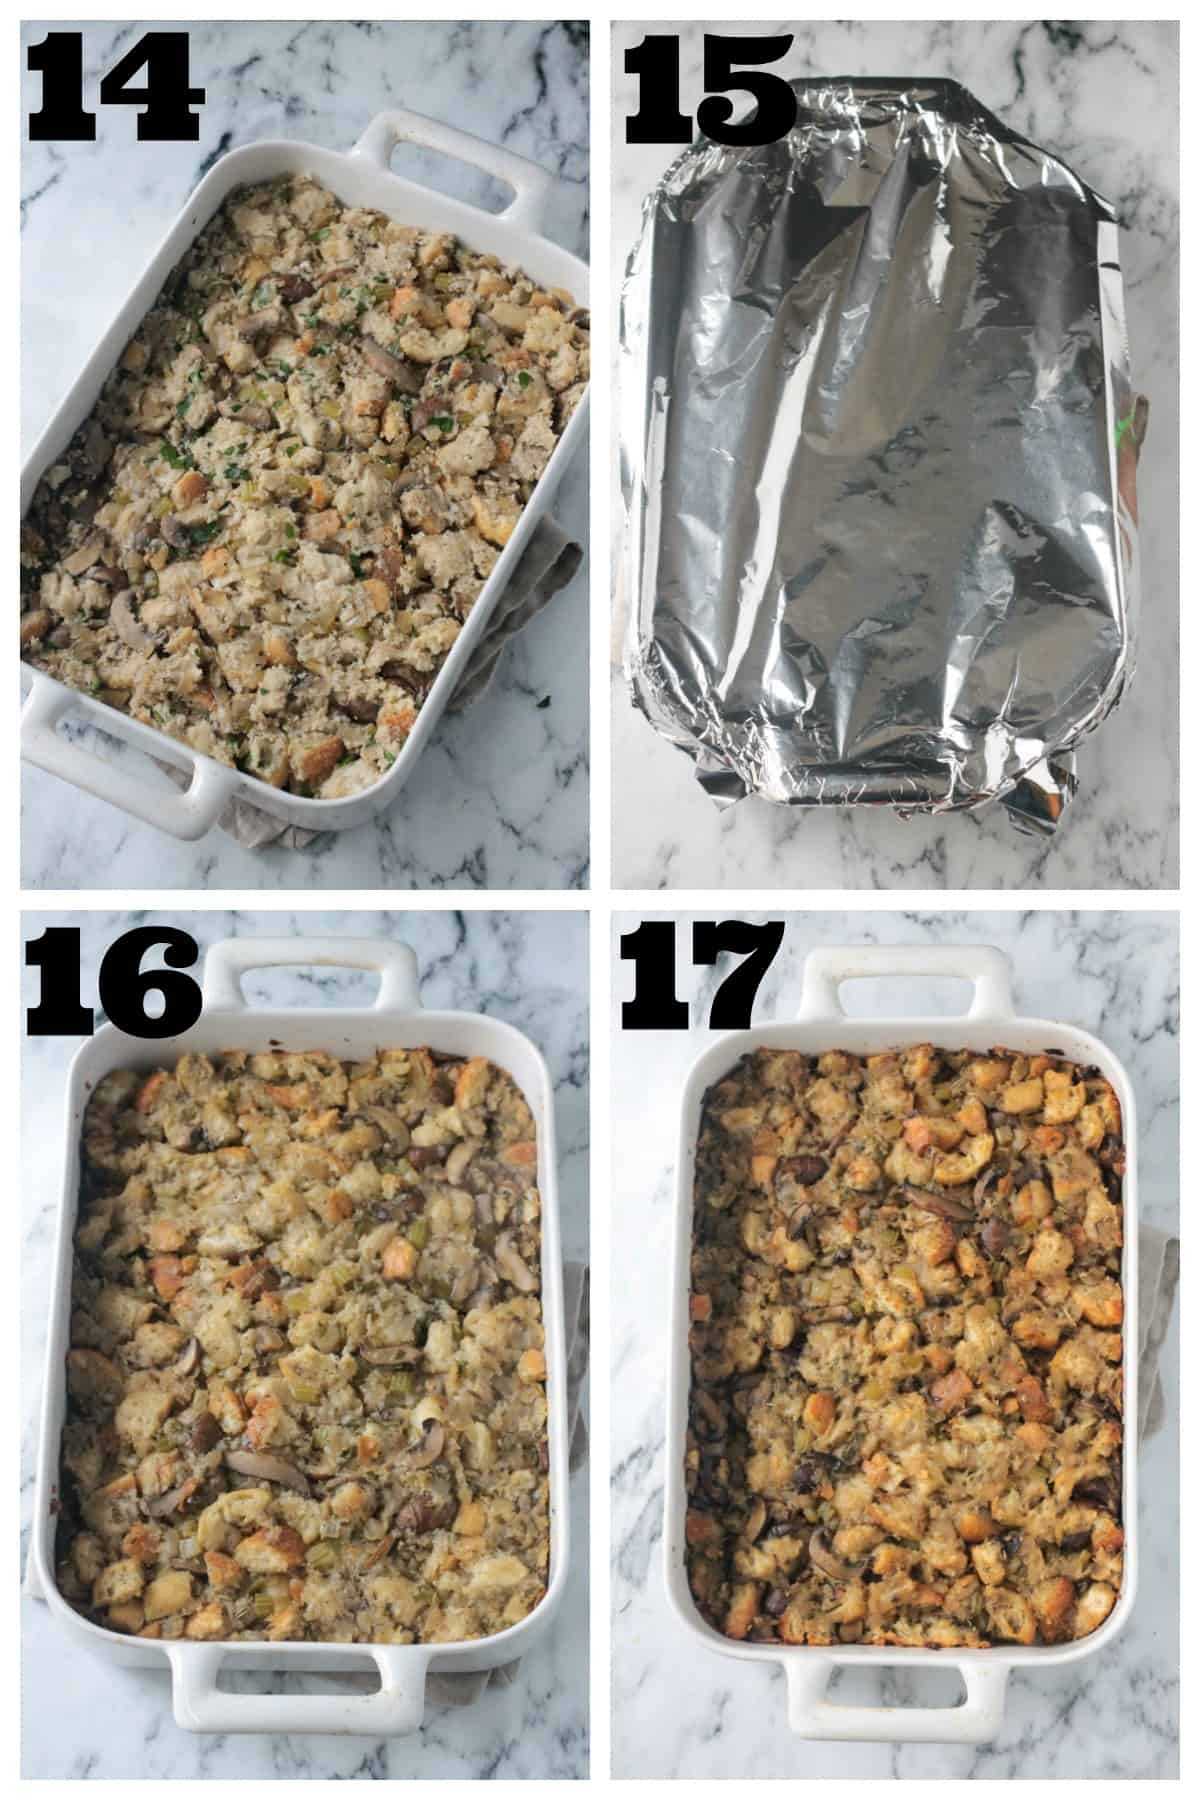 4 photo collage: uncooked mixture in pan, covering w/ foil and baking.